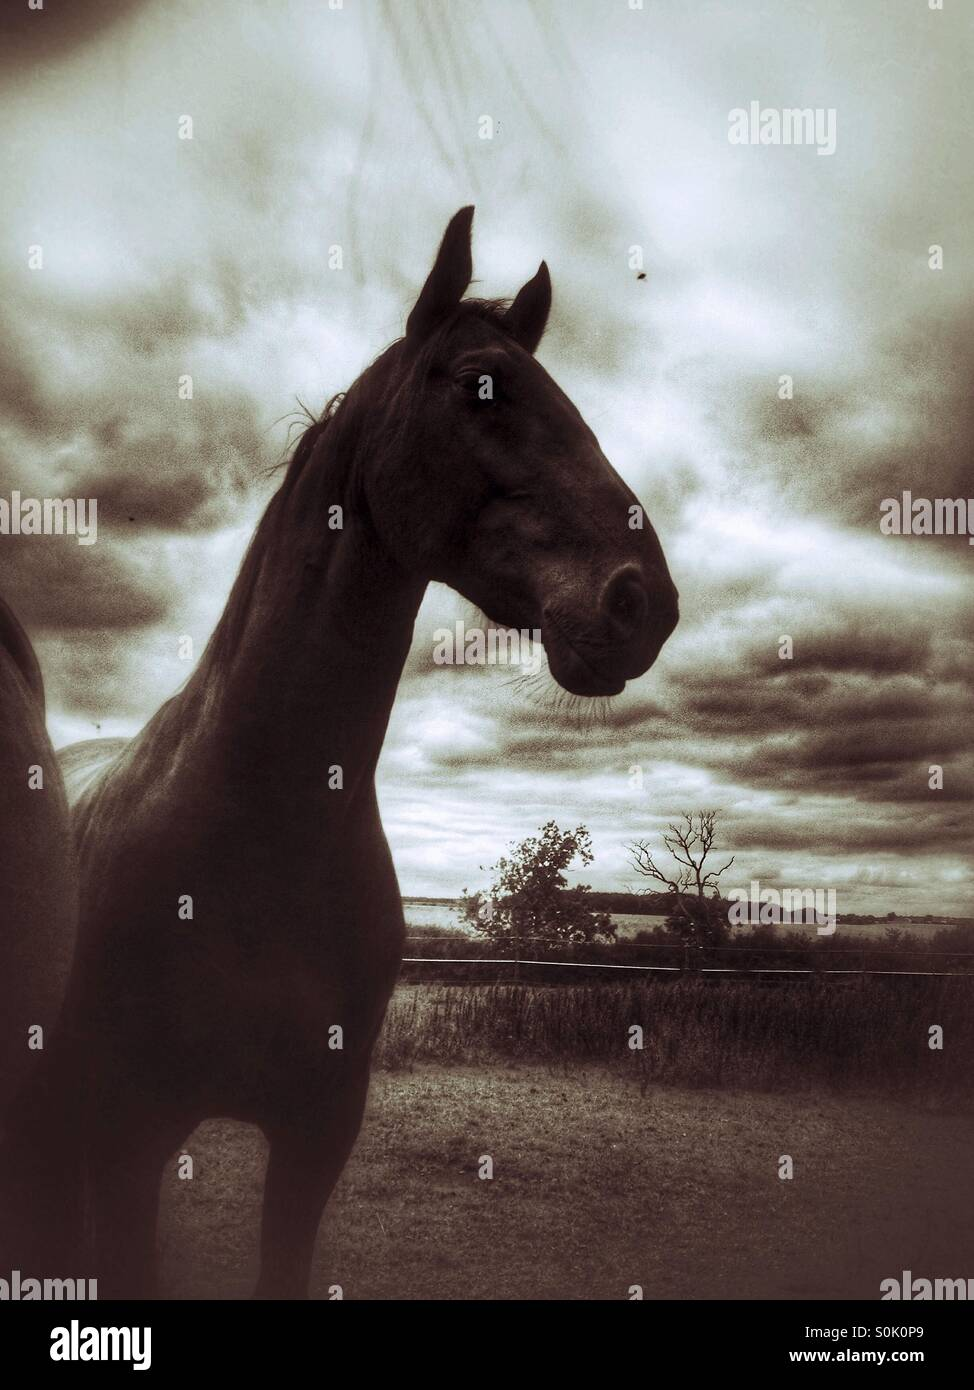 Horse in field - Stock Image